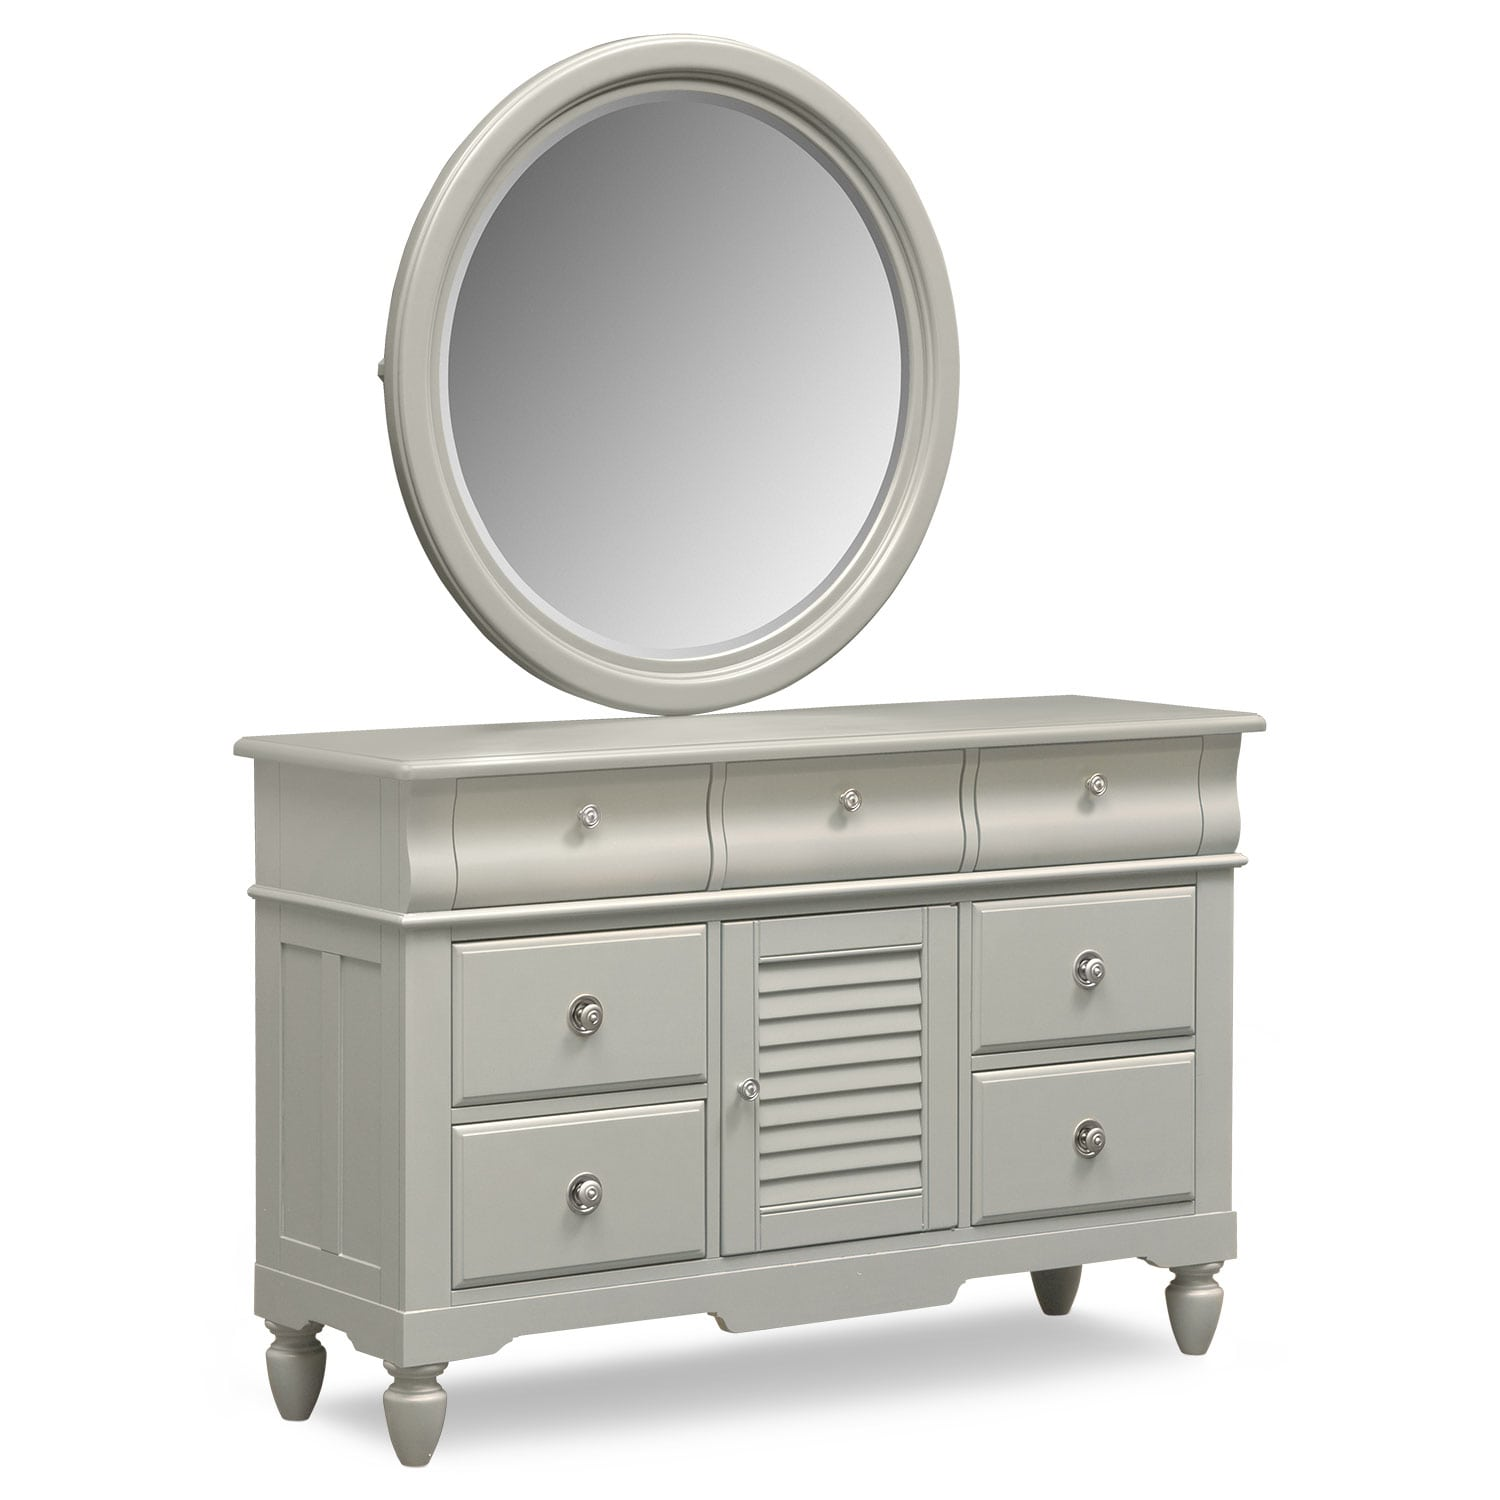 Kids Furniture - Seaside Dresser and Mirror